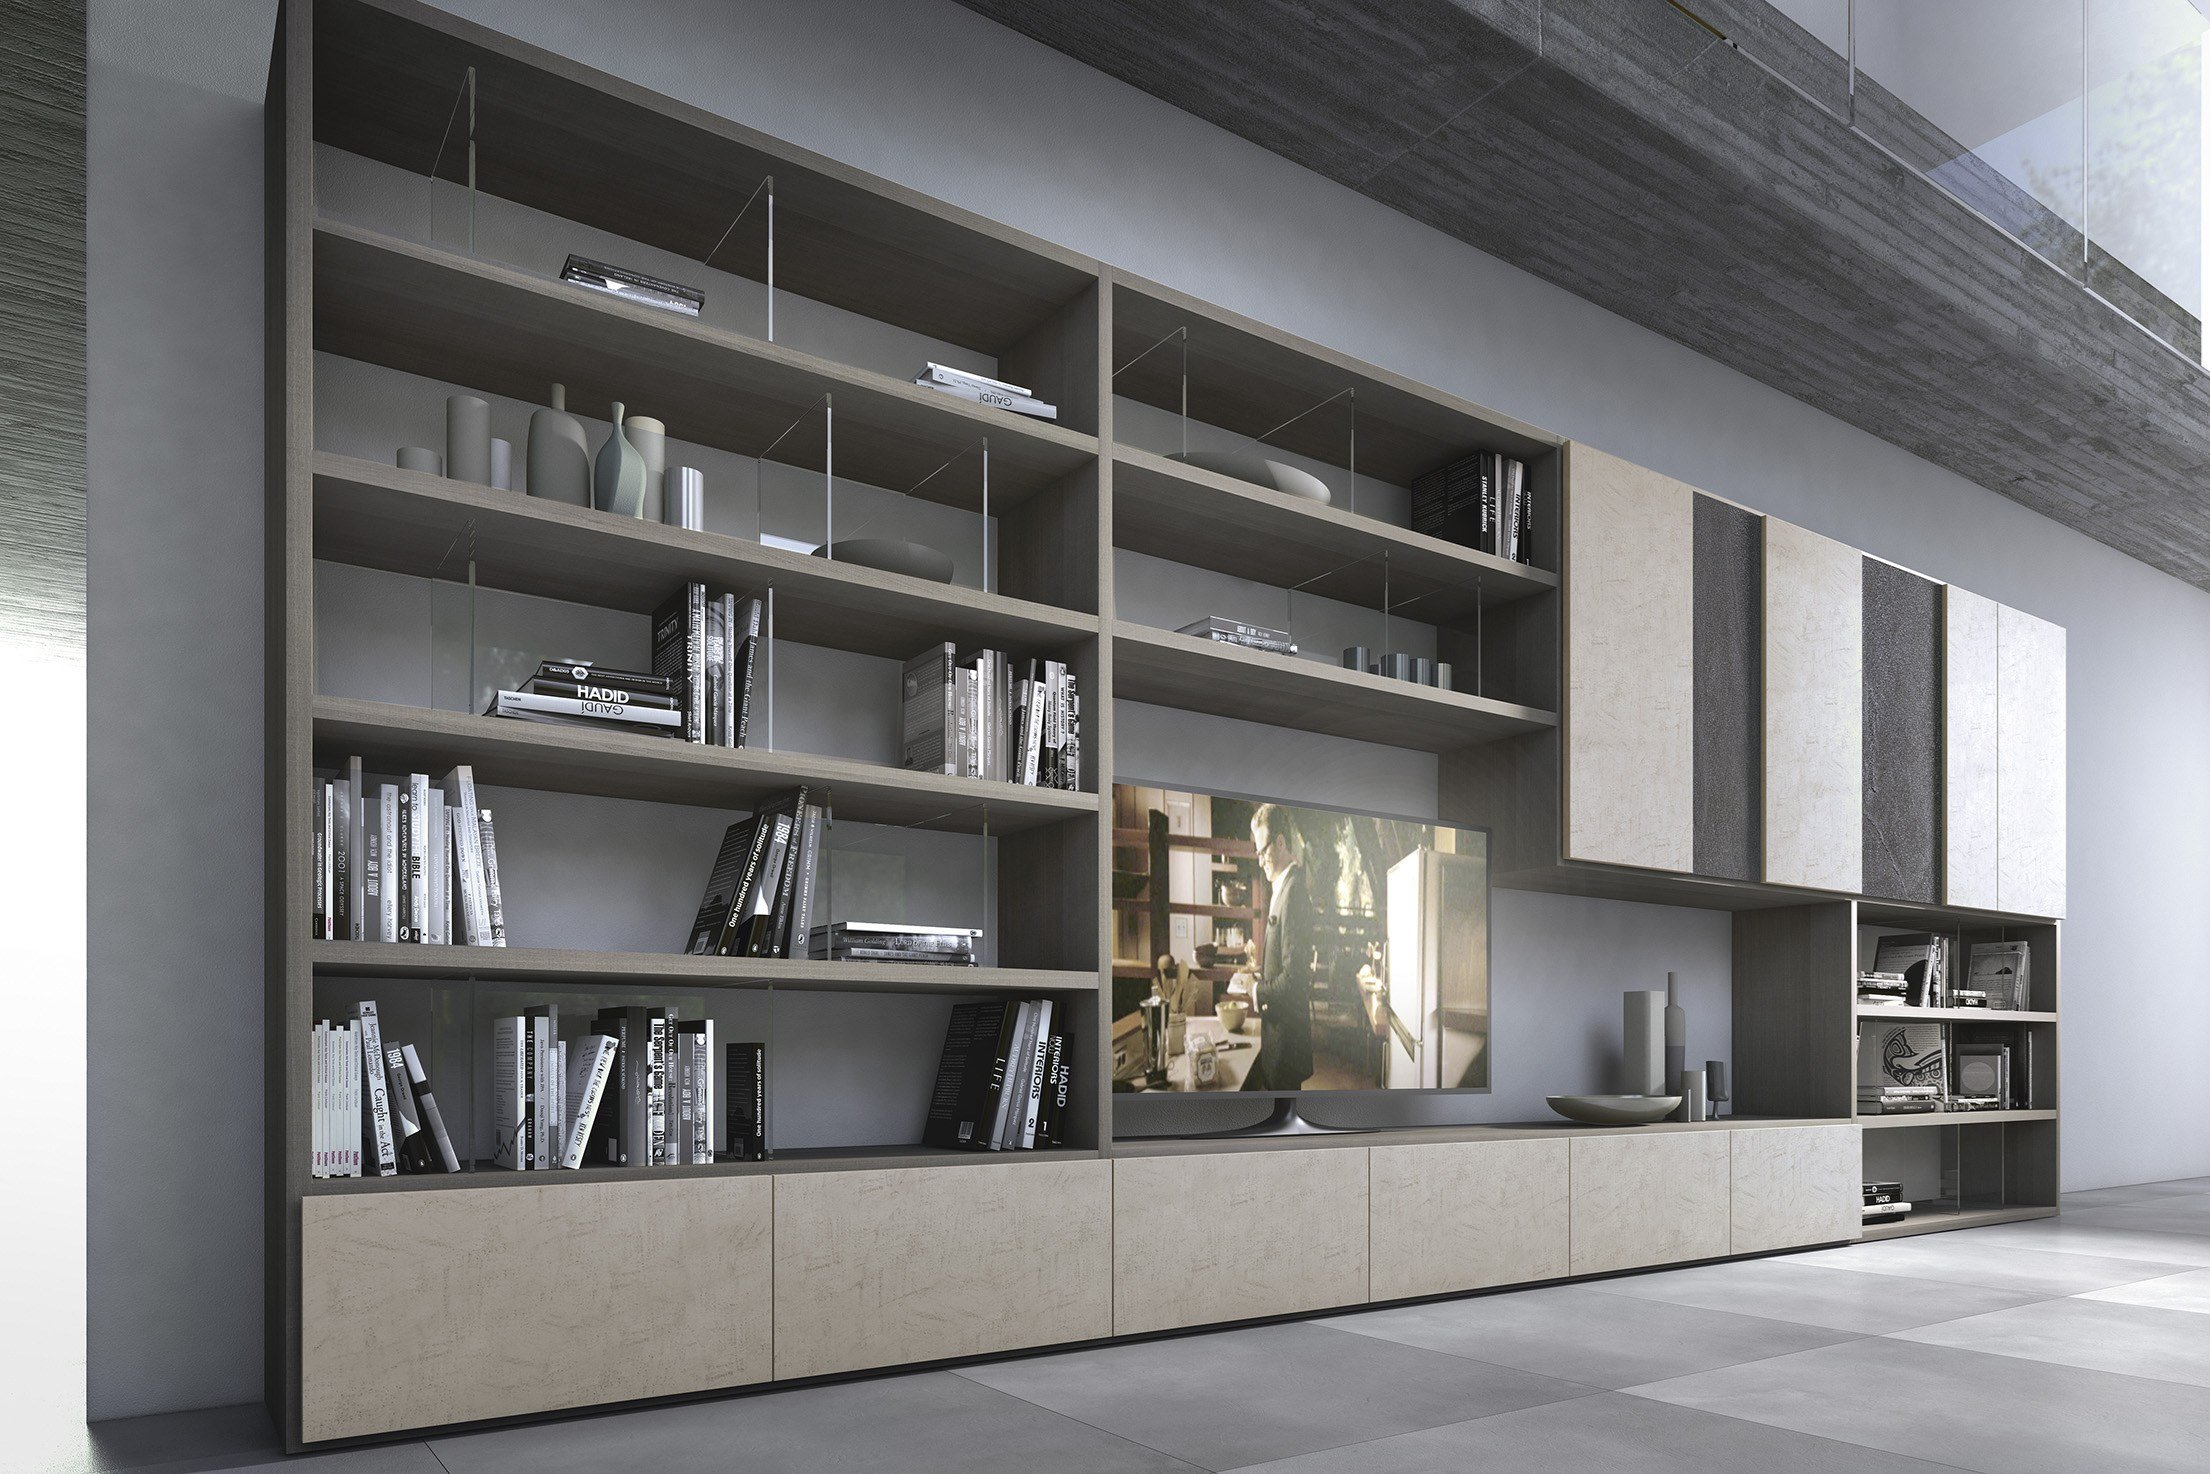 Awesome Presotto Industrie Mobili Ideas - Skilifts.us - skilifts.us